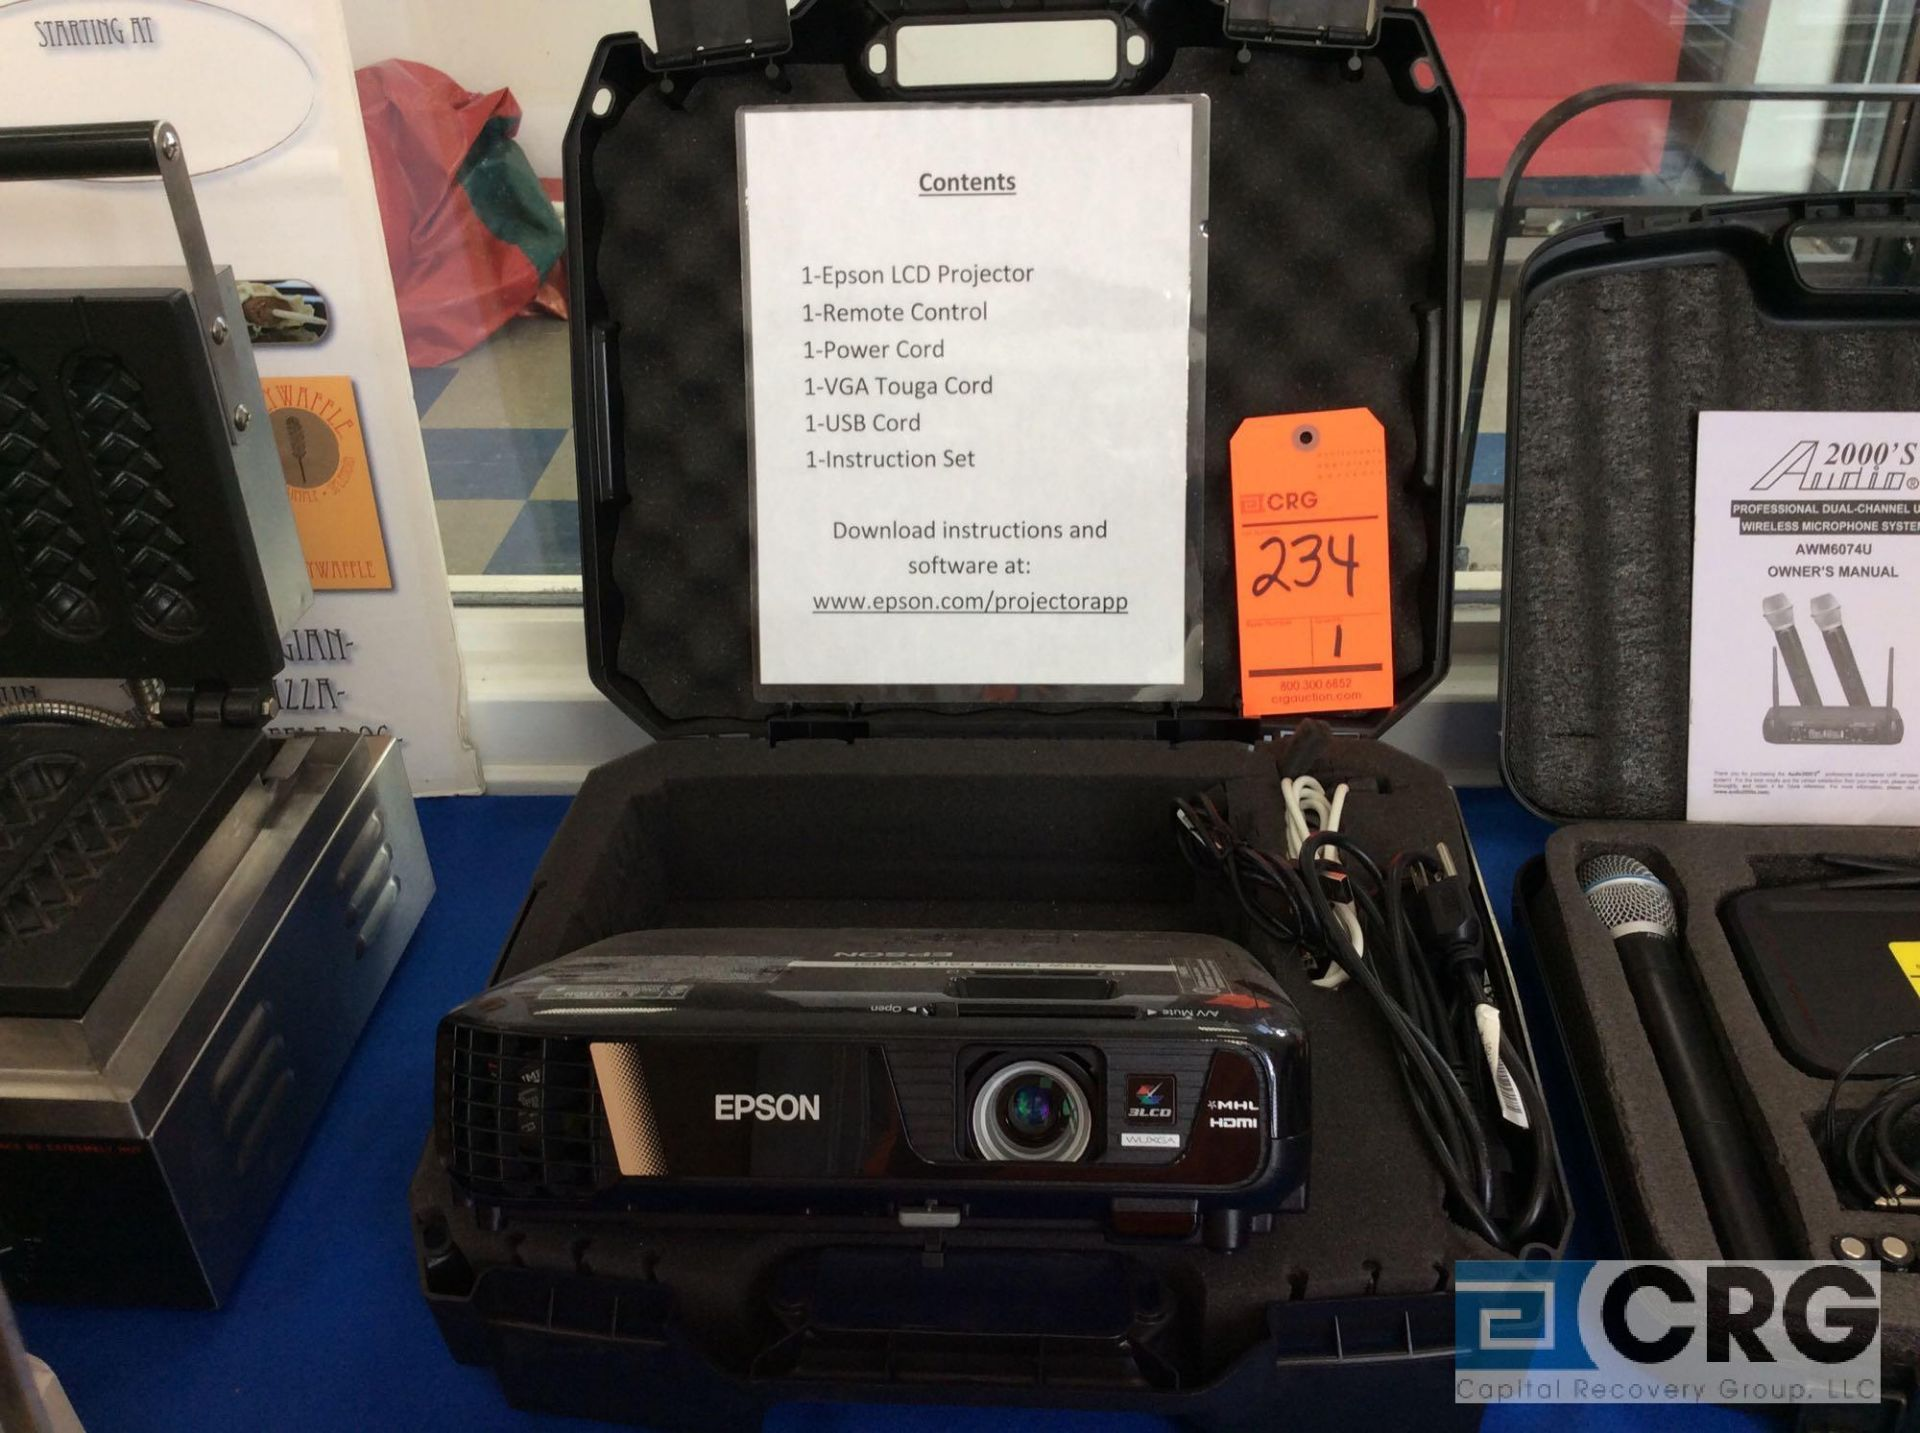 Lot 234 - Epson LCD Projector